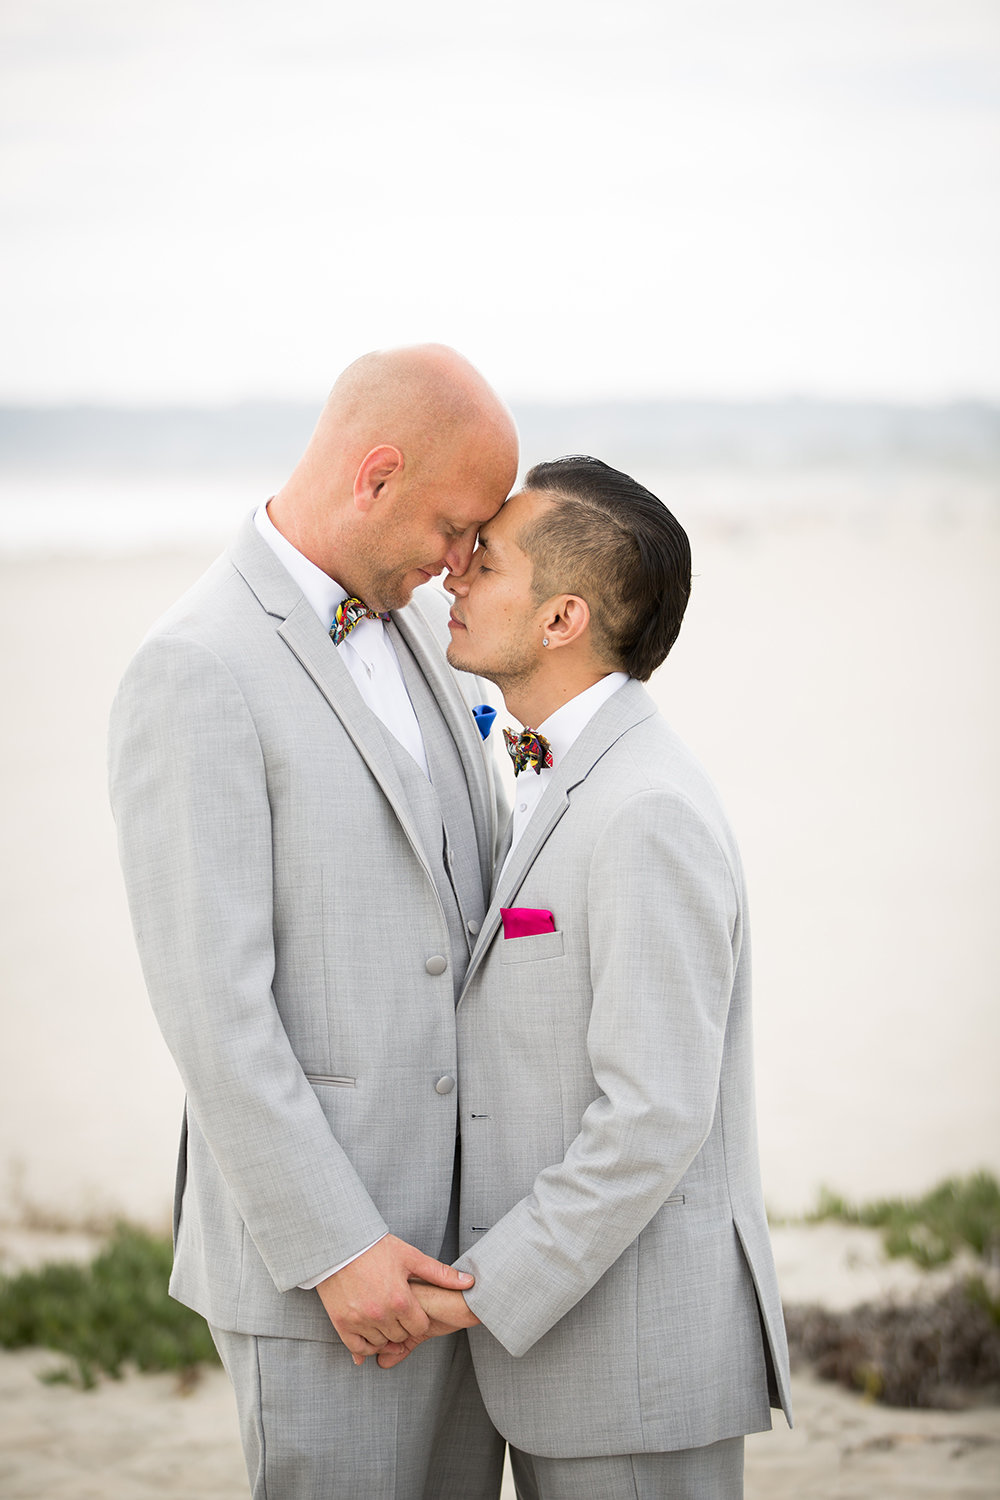 Grooms share a sweet moment at beach in Coronado